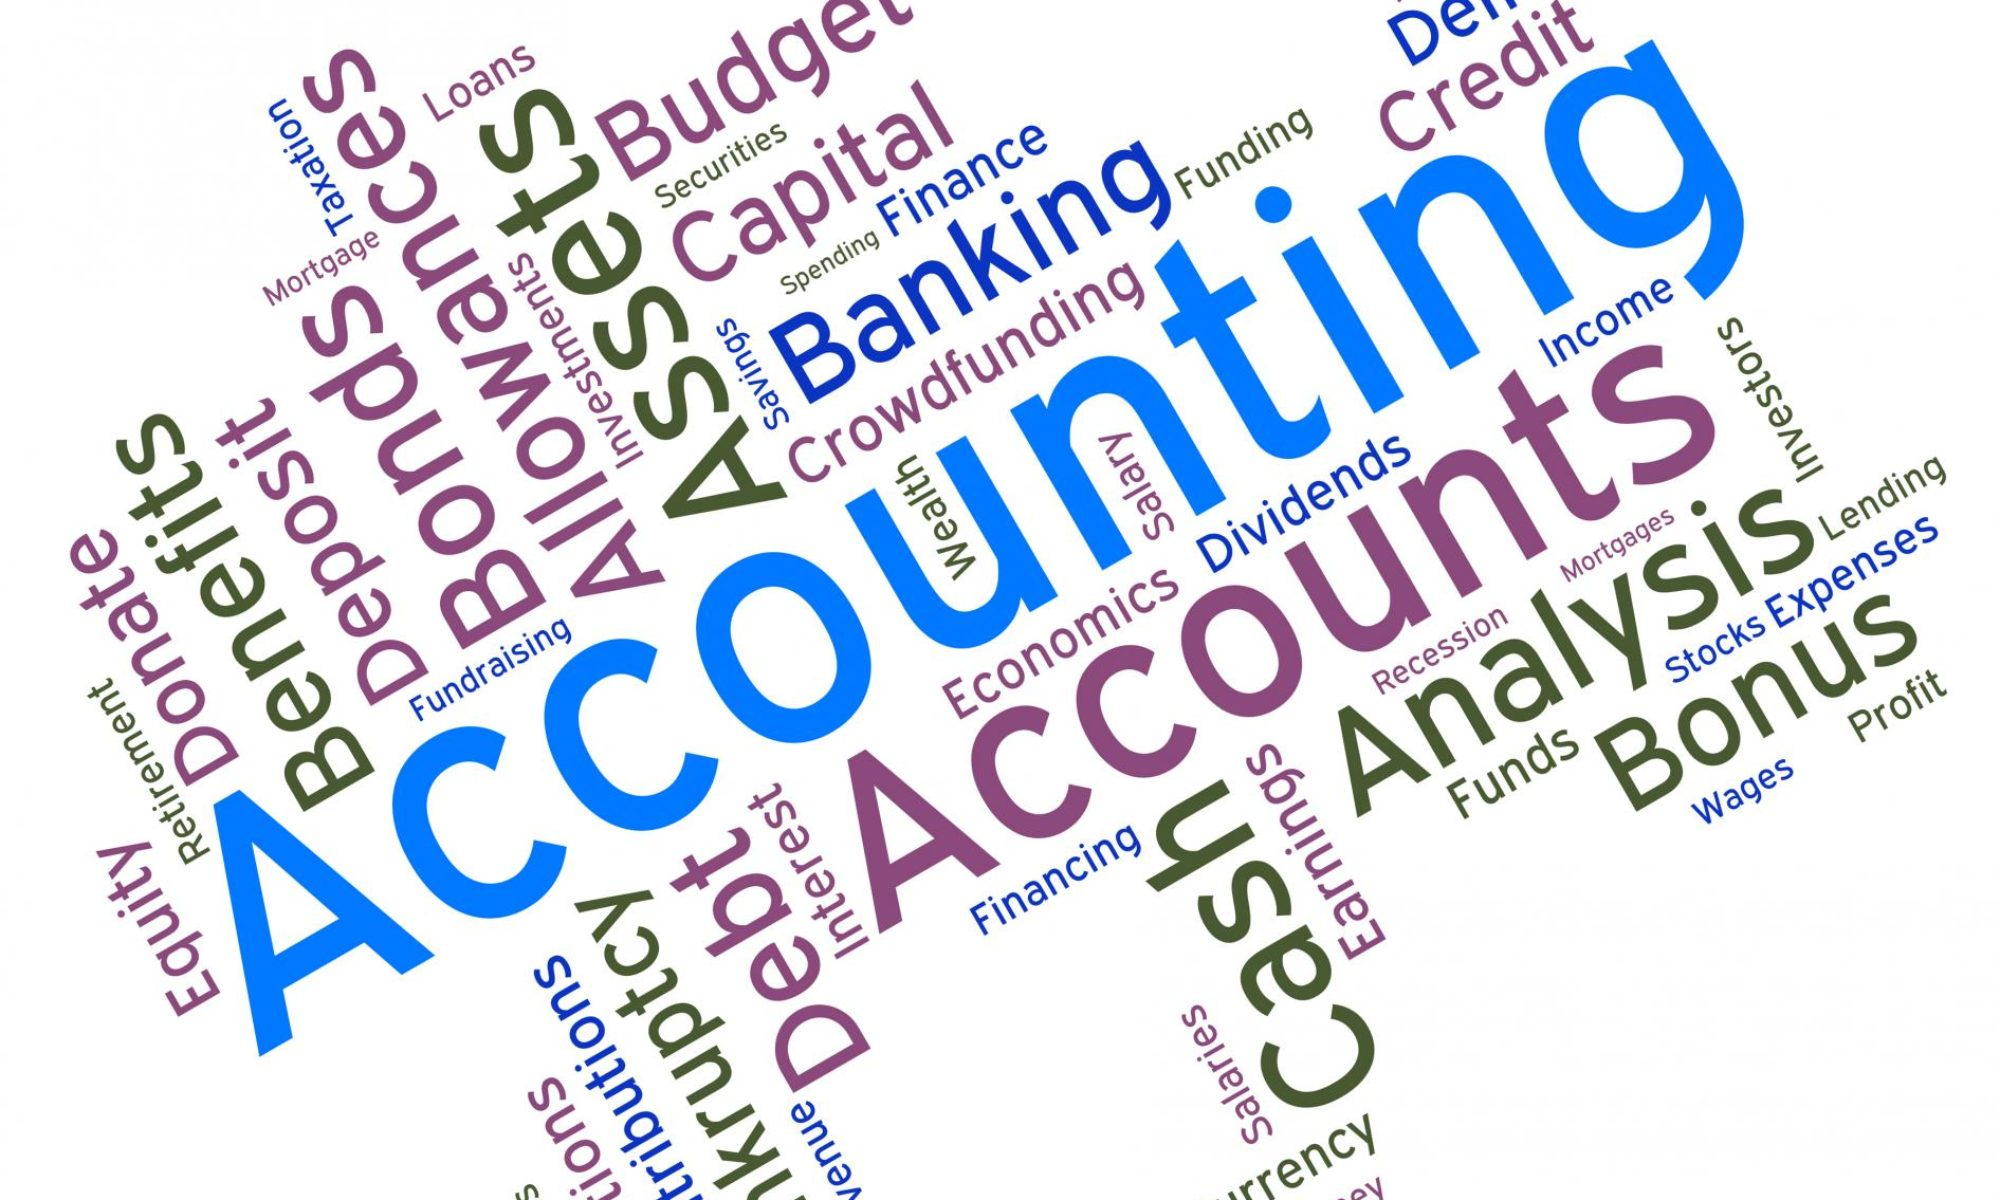 Personal Finances and Accountant Info